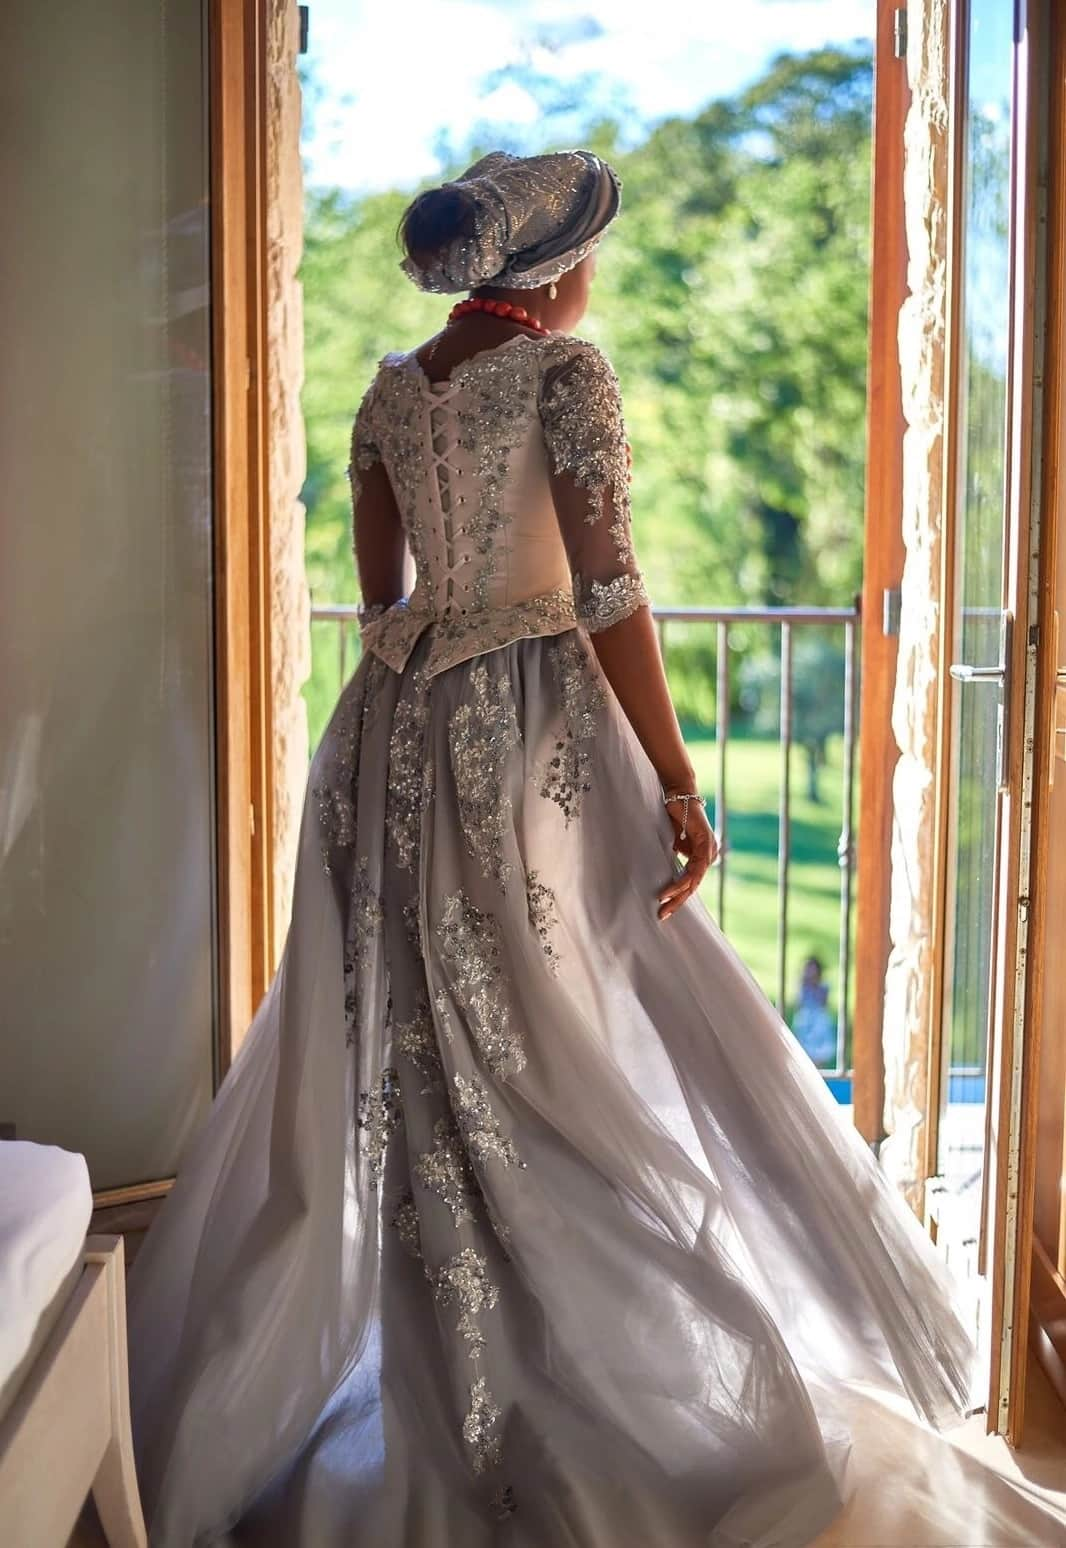 Wedding gown with French lace sleeves